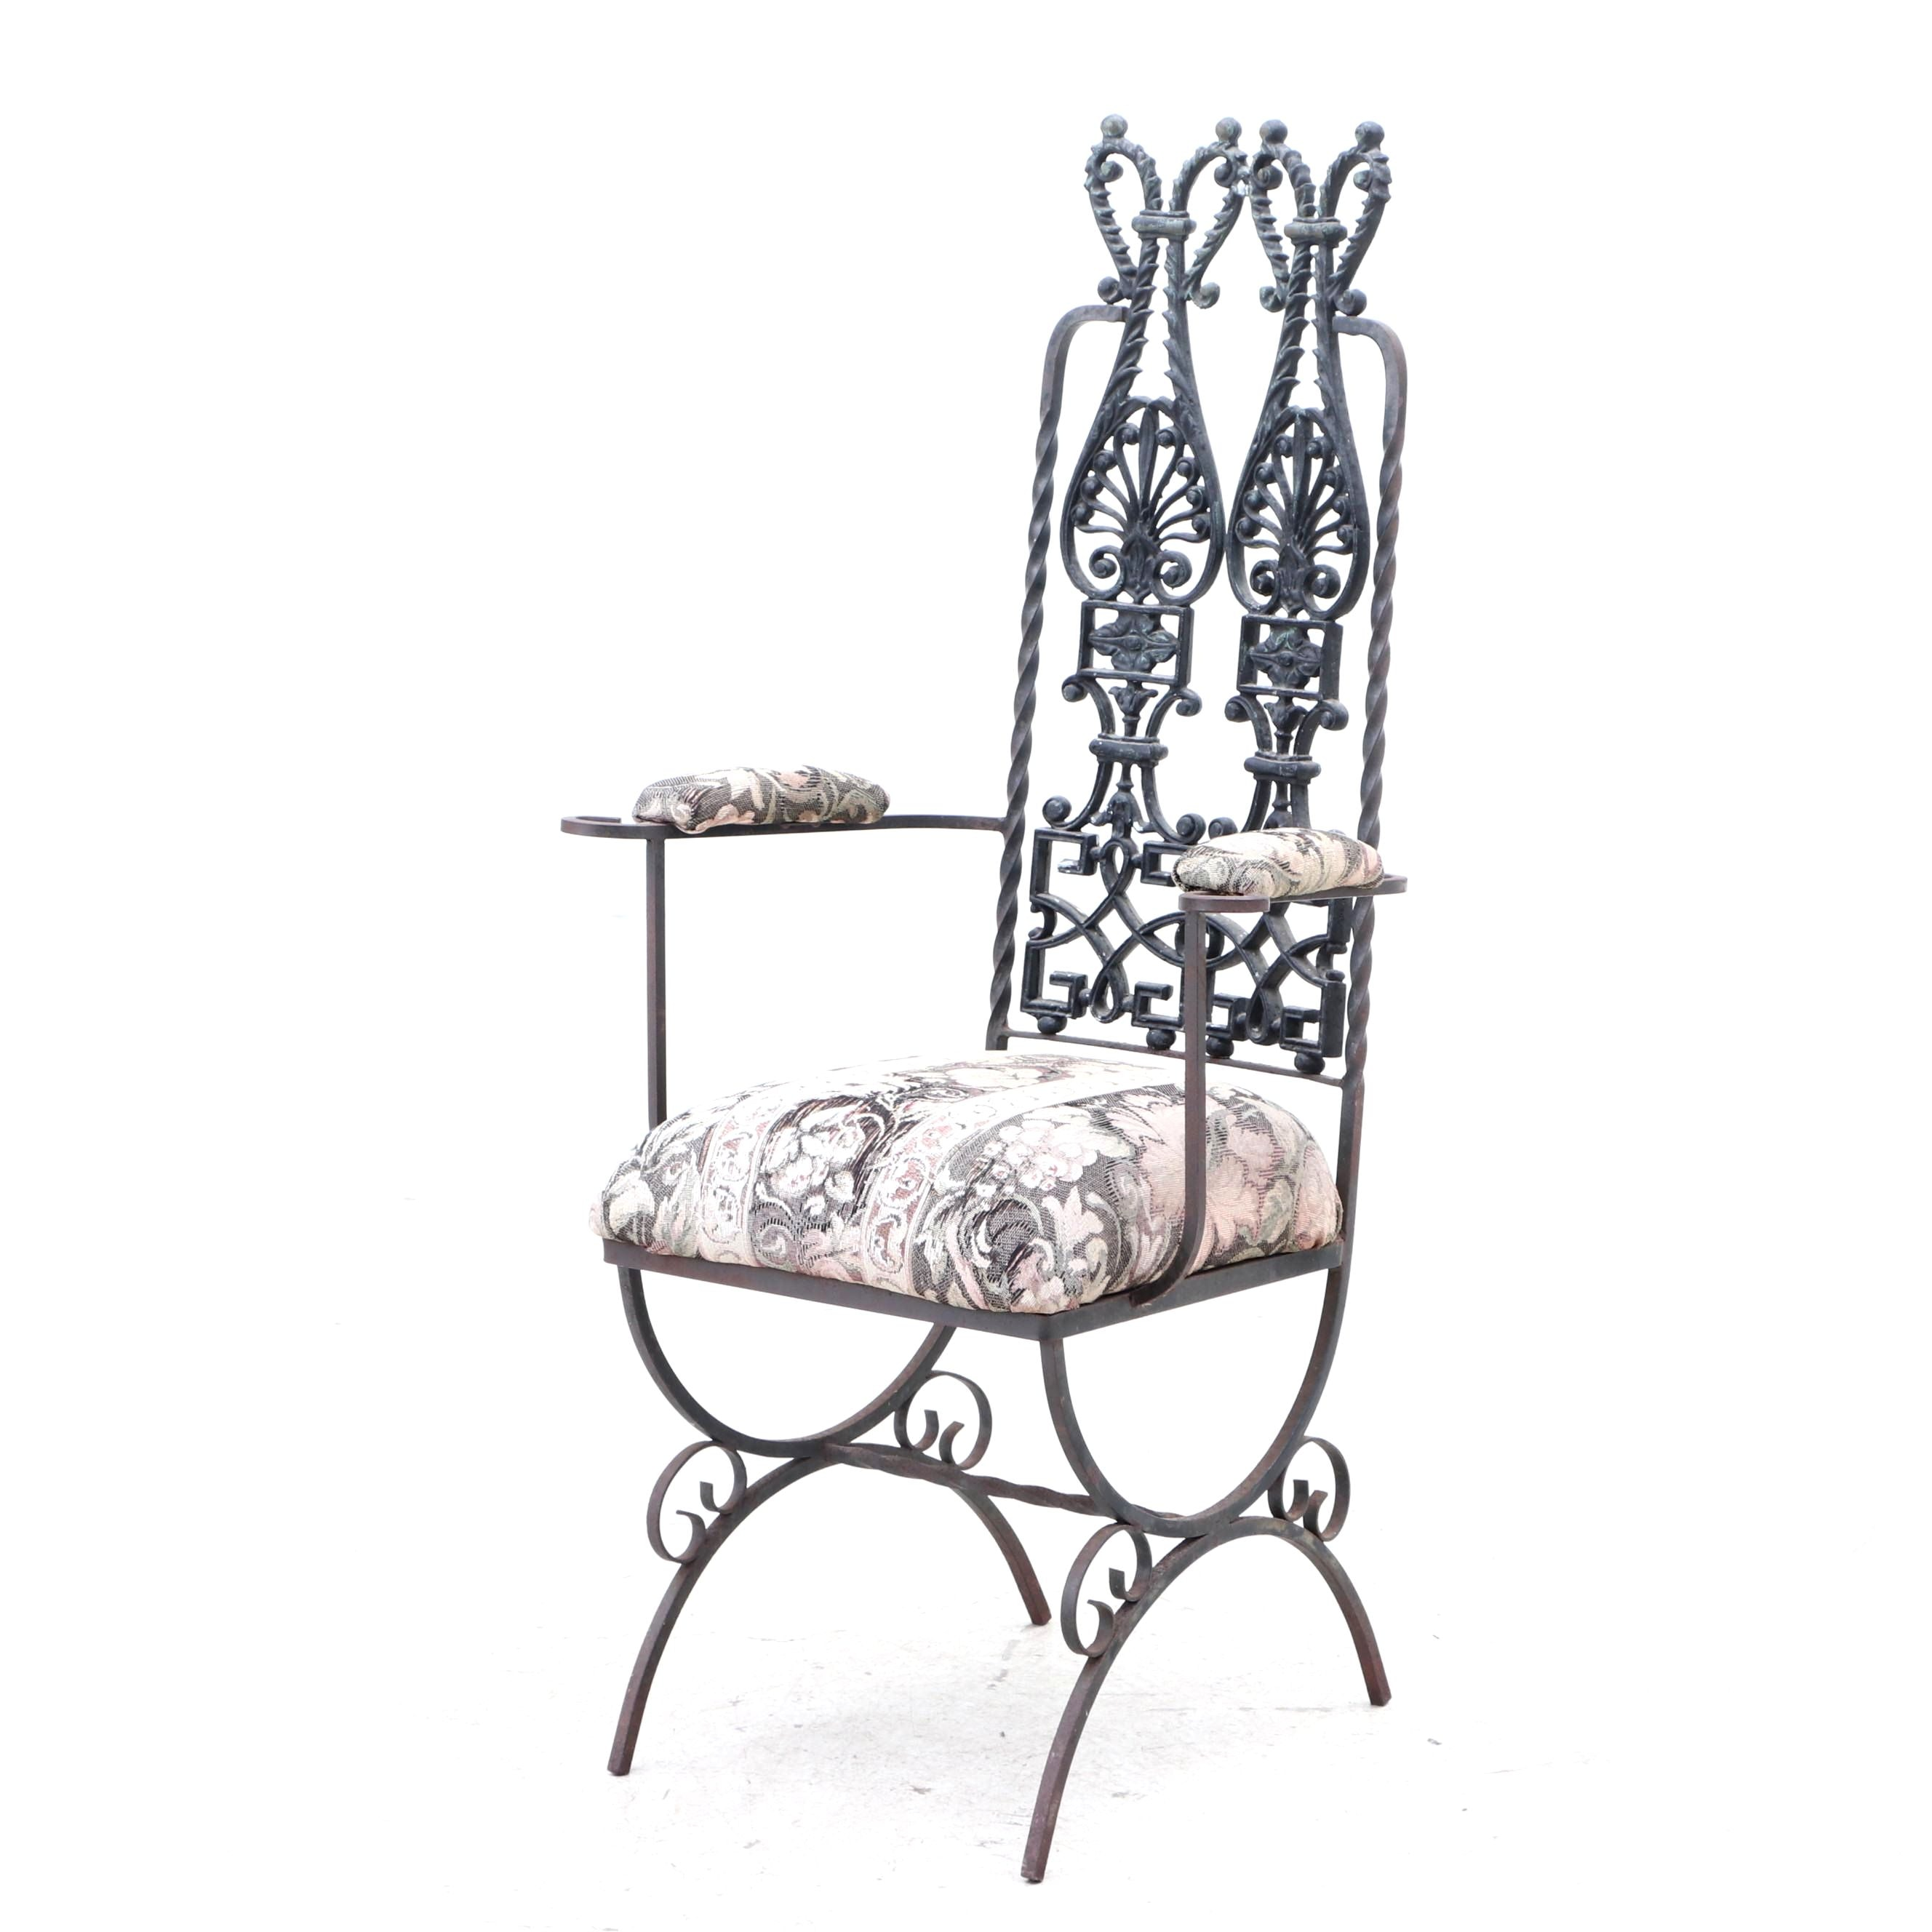 Classical Style Cast and Wrought Iron Chair, Circa 1950s-60s